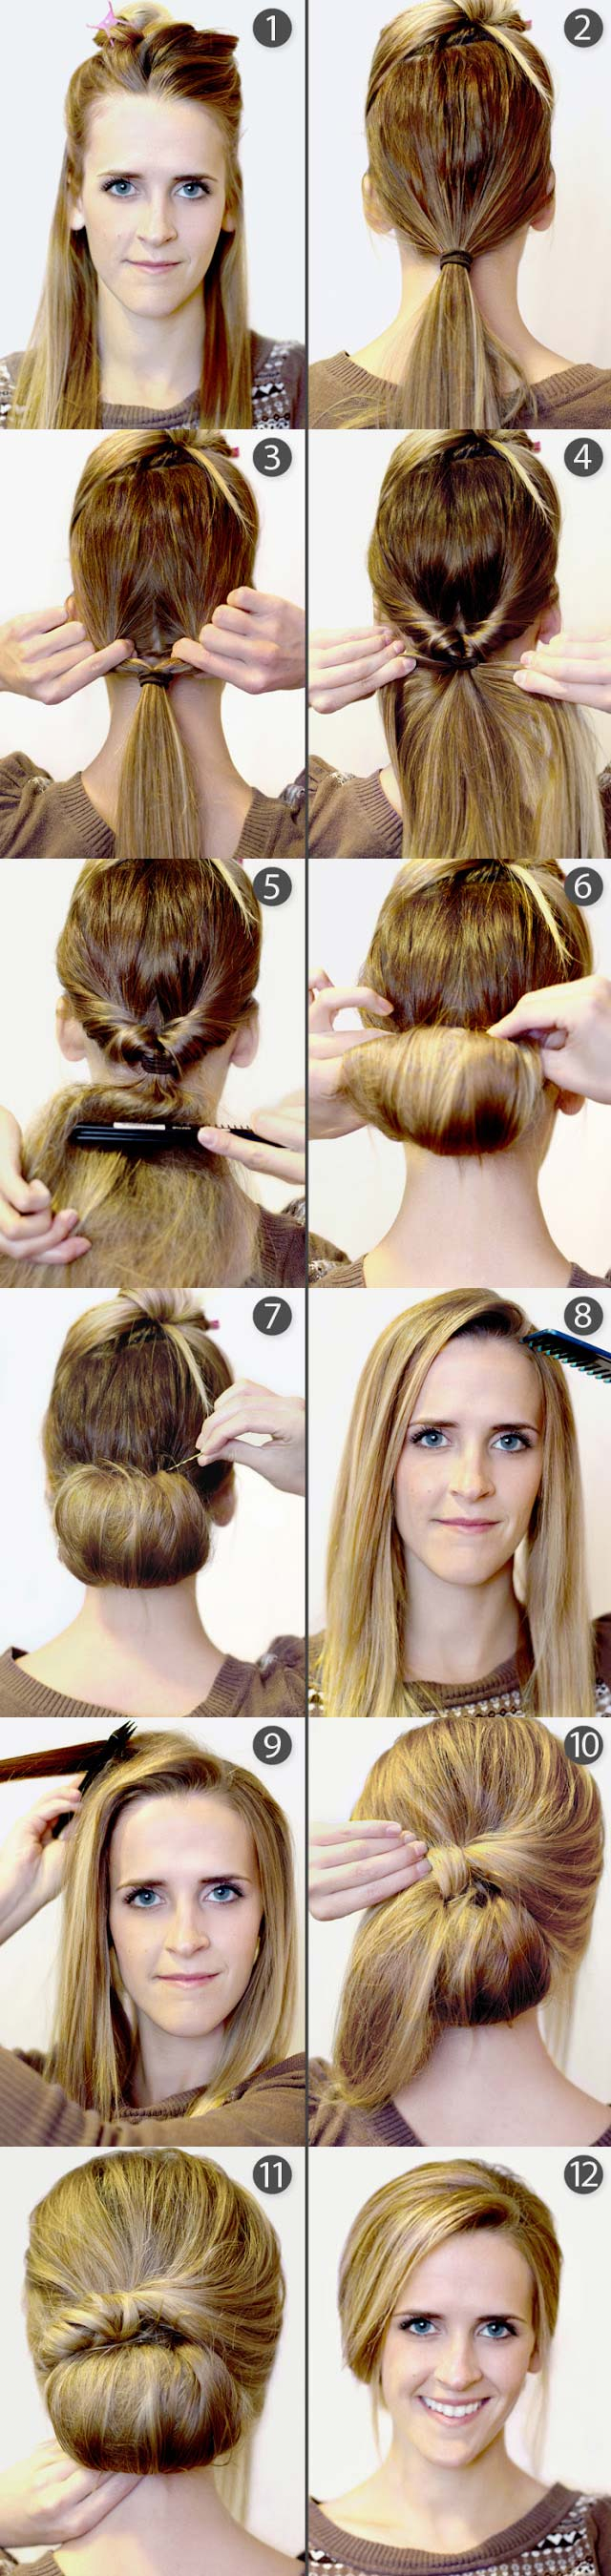 9 Pretty DIY Hairstyles With Step by Step Tutorials Pretty Designs